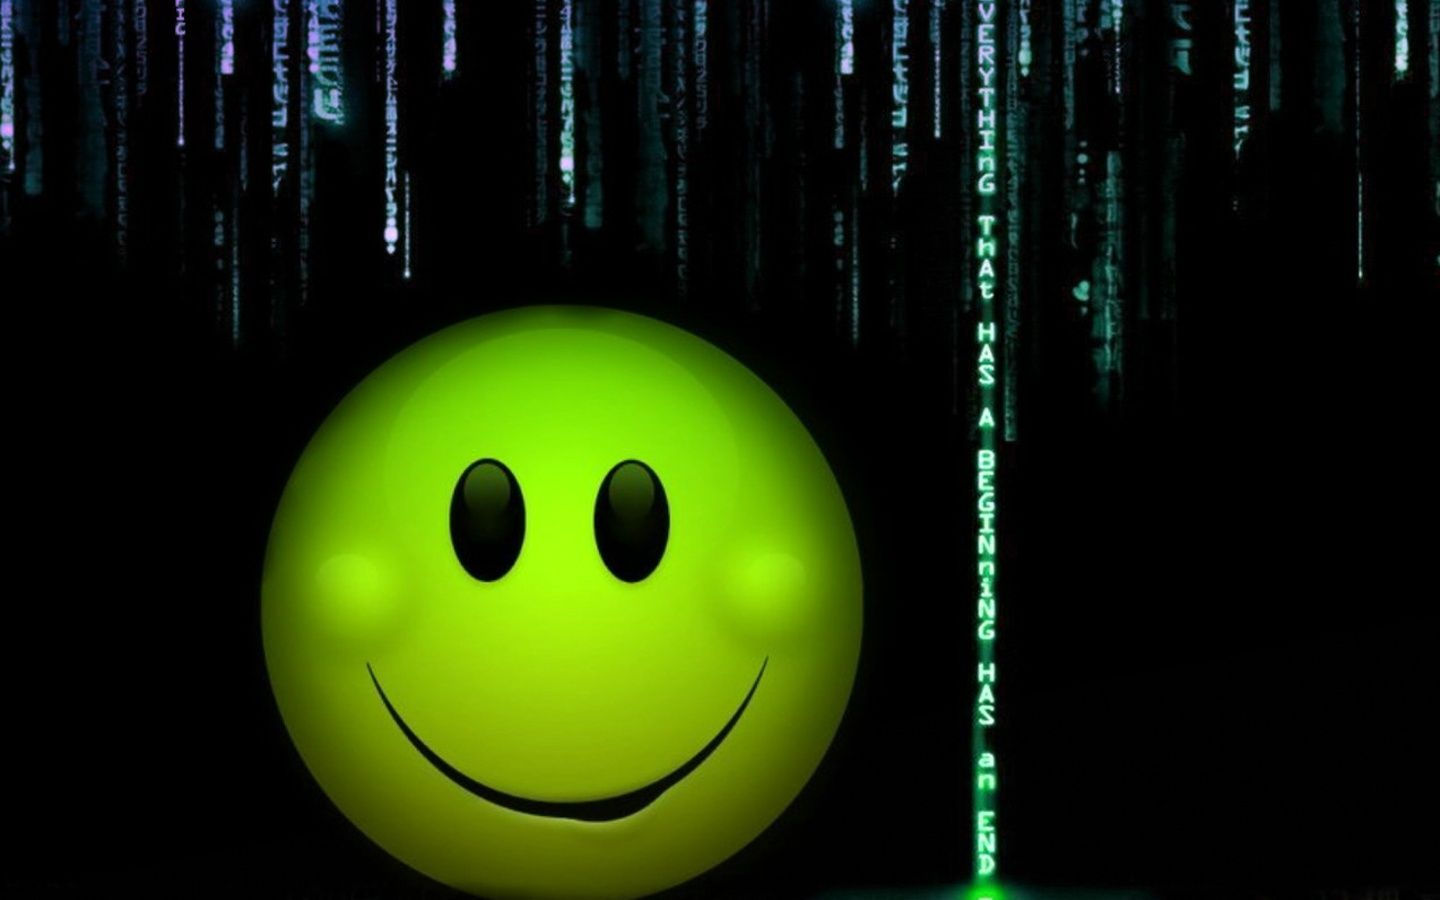 Download smiley face wallpaper hd wallpaper - D Woot Smiley Wallpaper For Windows Pc And Apple Mac Smiley 1024 768 Smiley Wallpapers